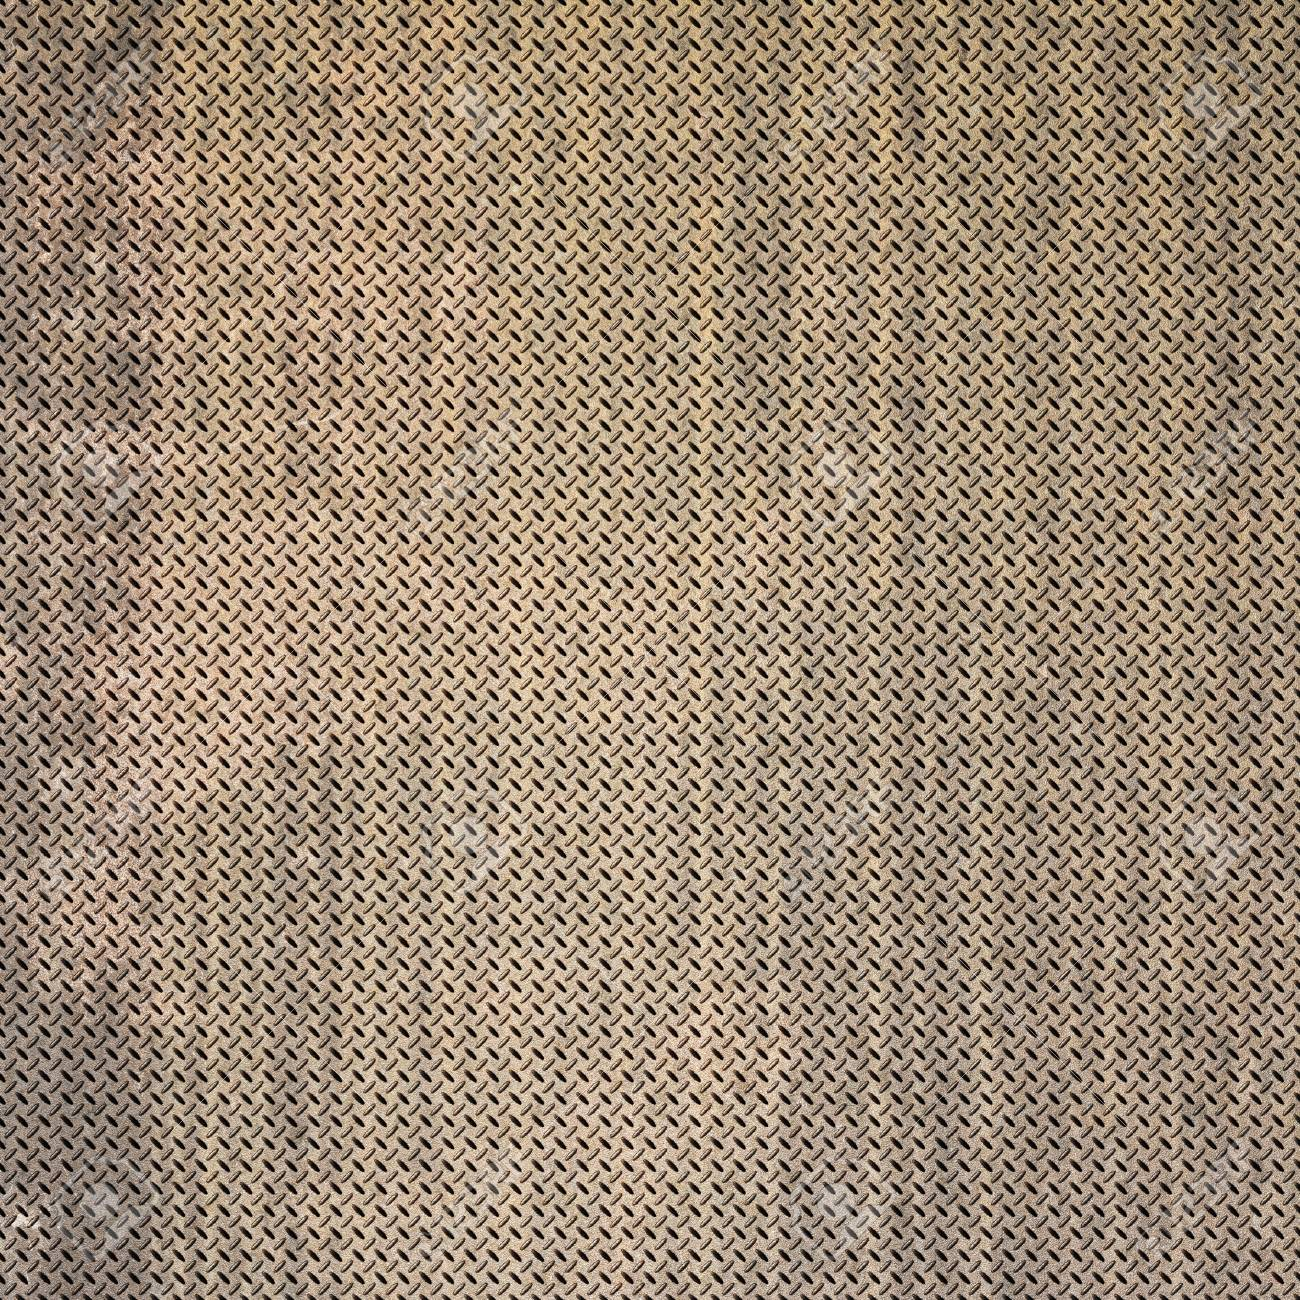 Background of metal diamond plate in grungy color. Stock Photo - 24662734